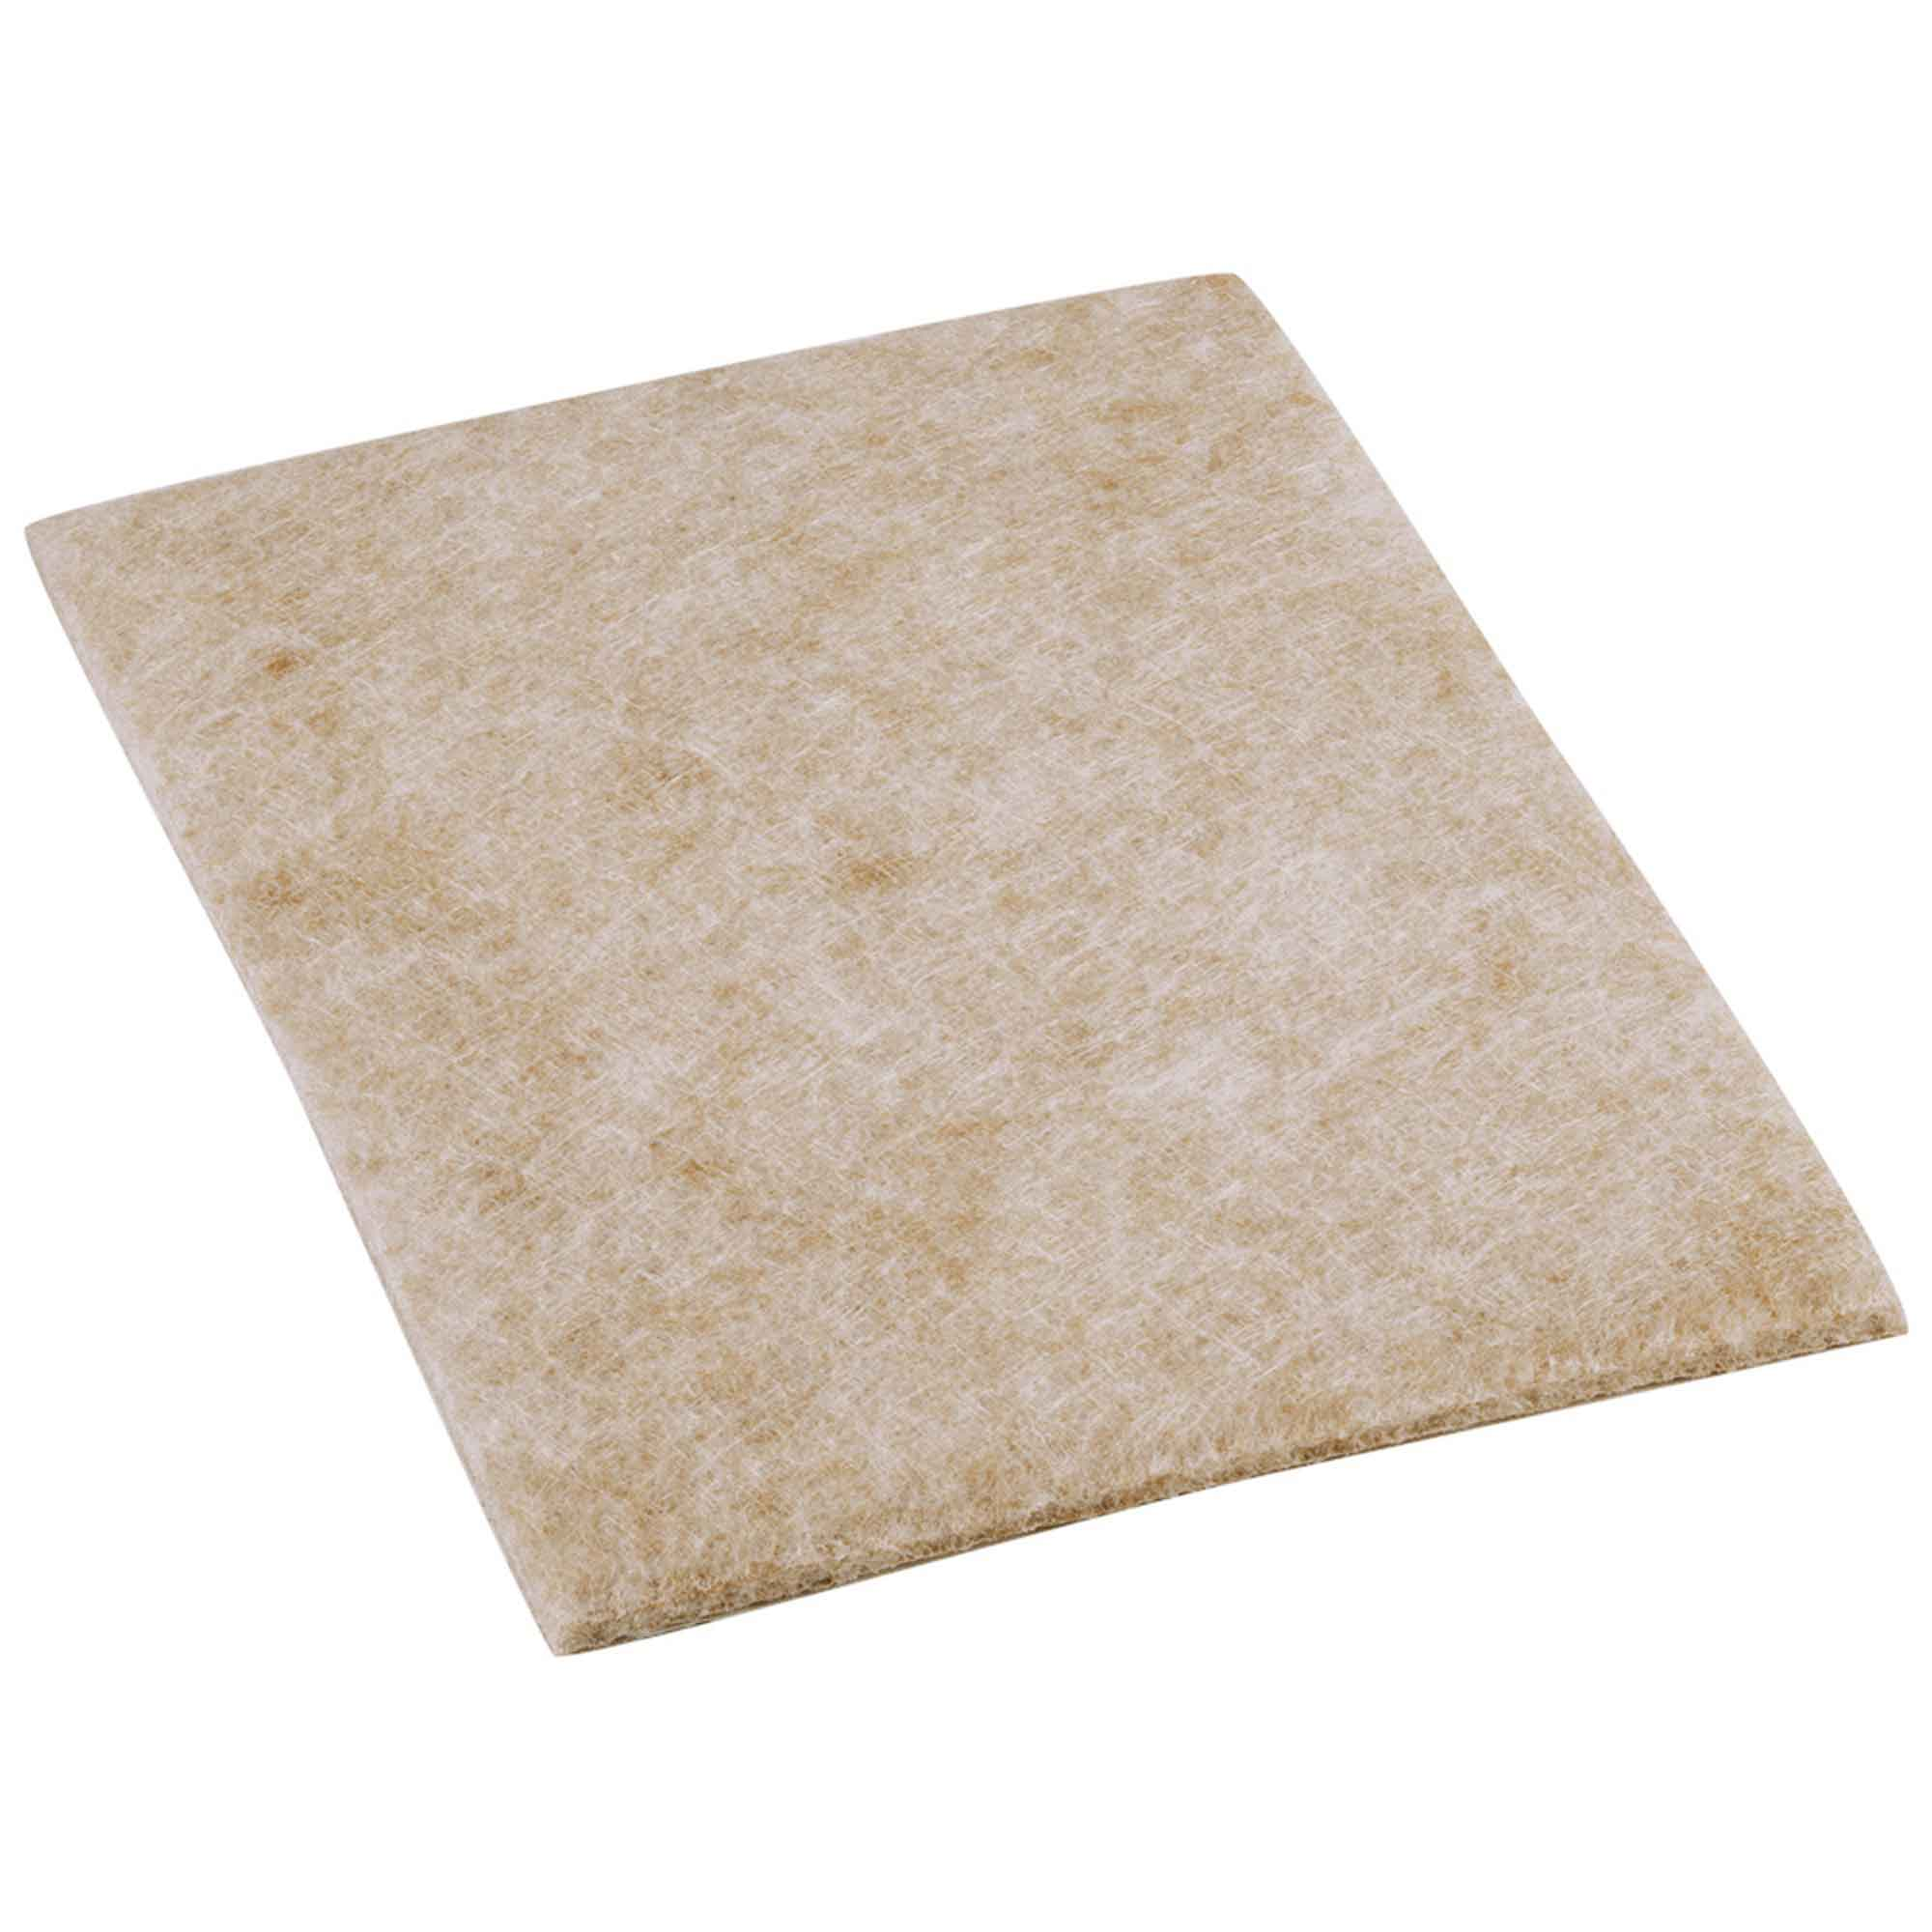 Select Heavy Duty Felt Pads 110mmx150mm Pack of 2